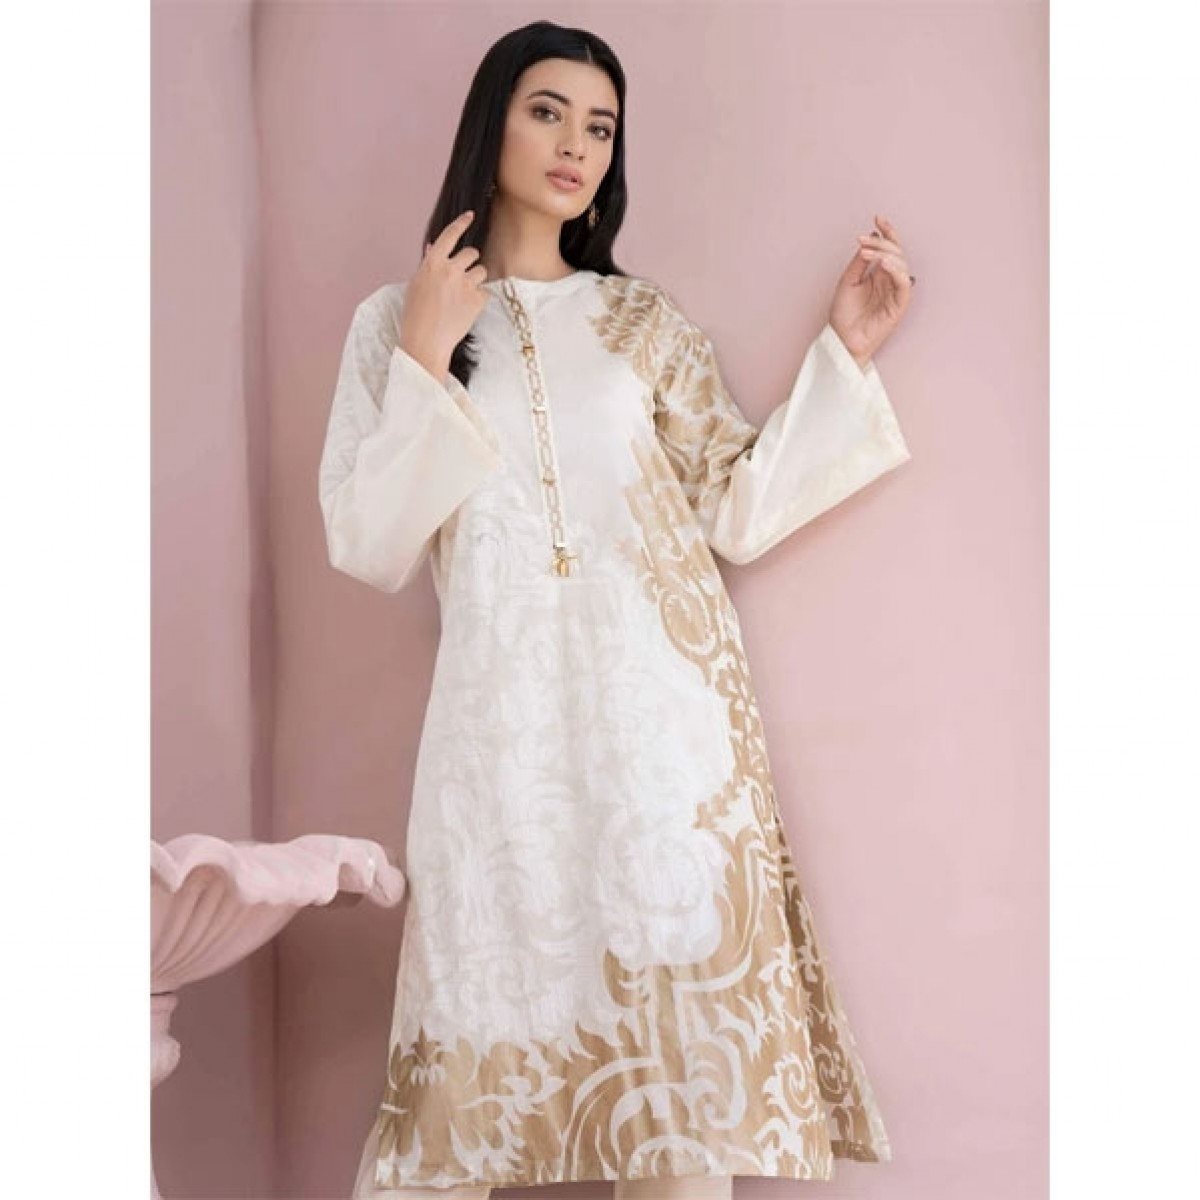 Limelight Unstitched Printed Lawn Shirt Off White (U1025SH-SSH-OWH)